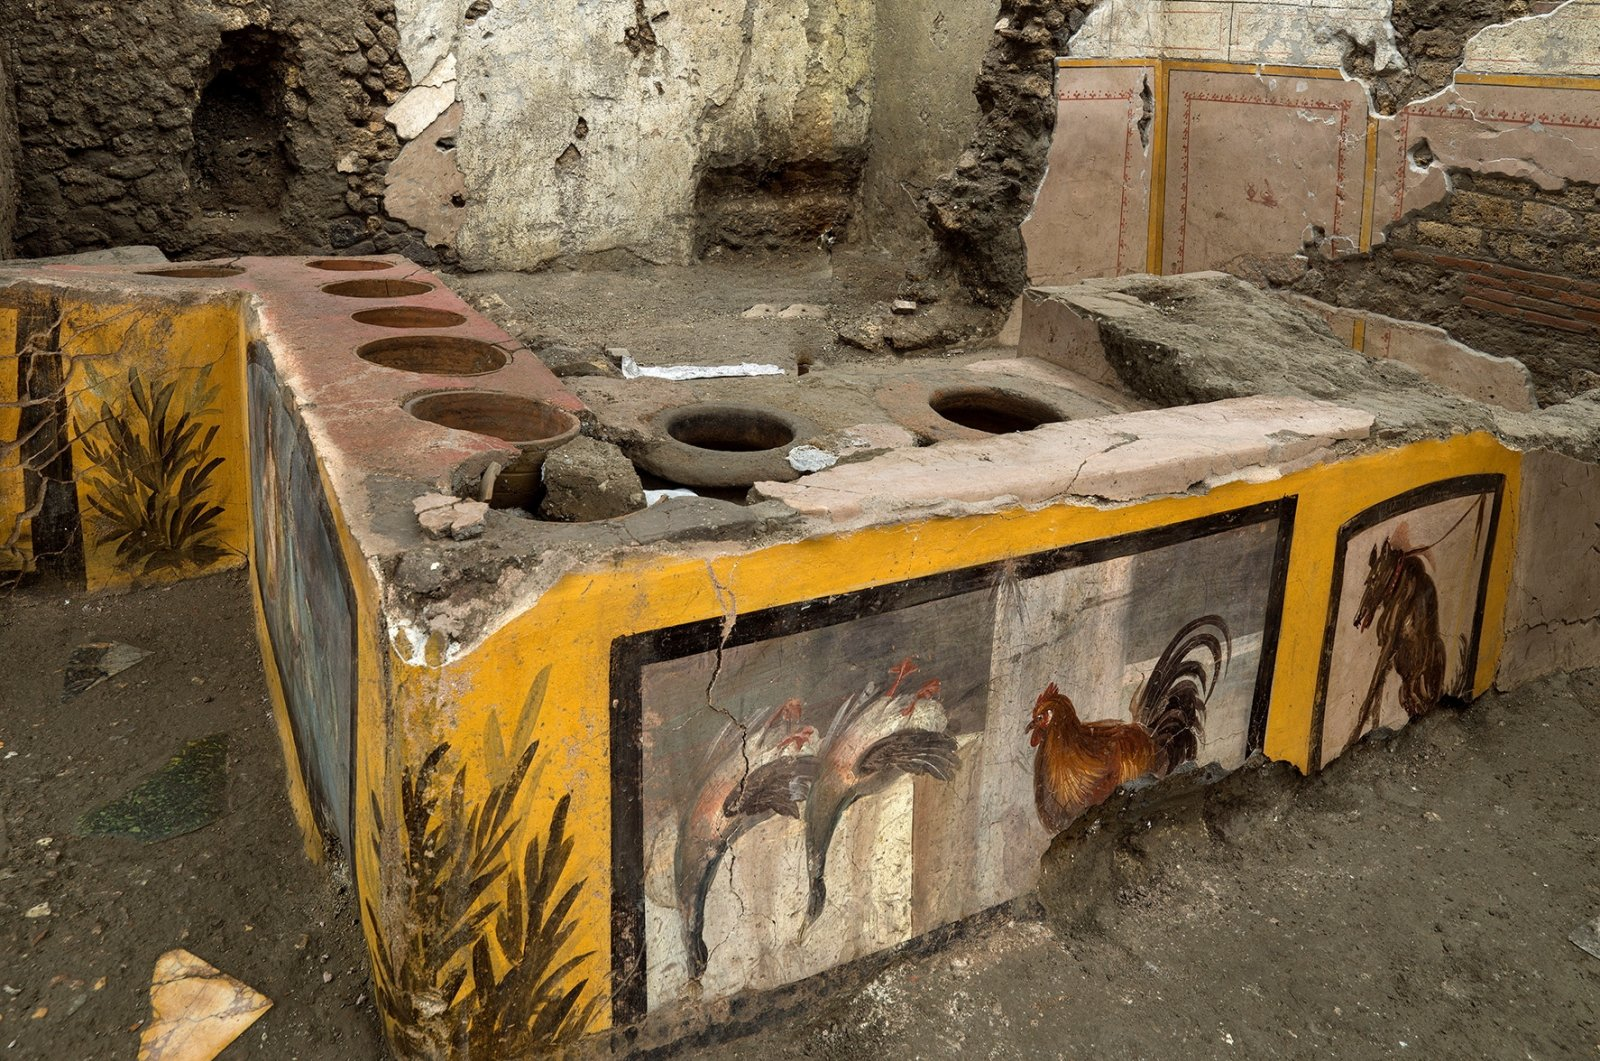 Frescoes on an ancient counter discovered during excavations in Pompeii, Italy, are seen in this handout picture released Dec. 26, 2020. (Pompeii Archaeological Park/Ministry of Cultural Heritage and Activities and Tourism via Reuters)